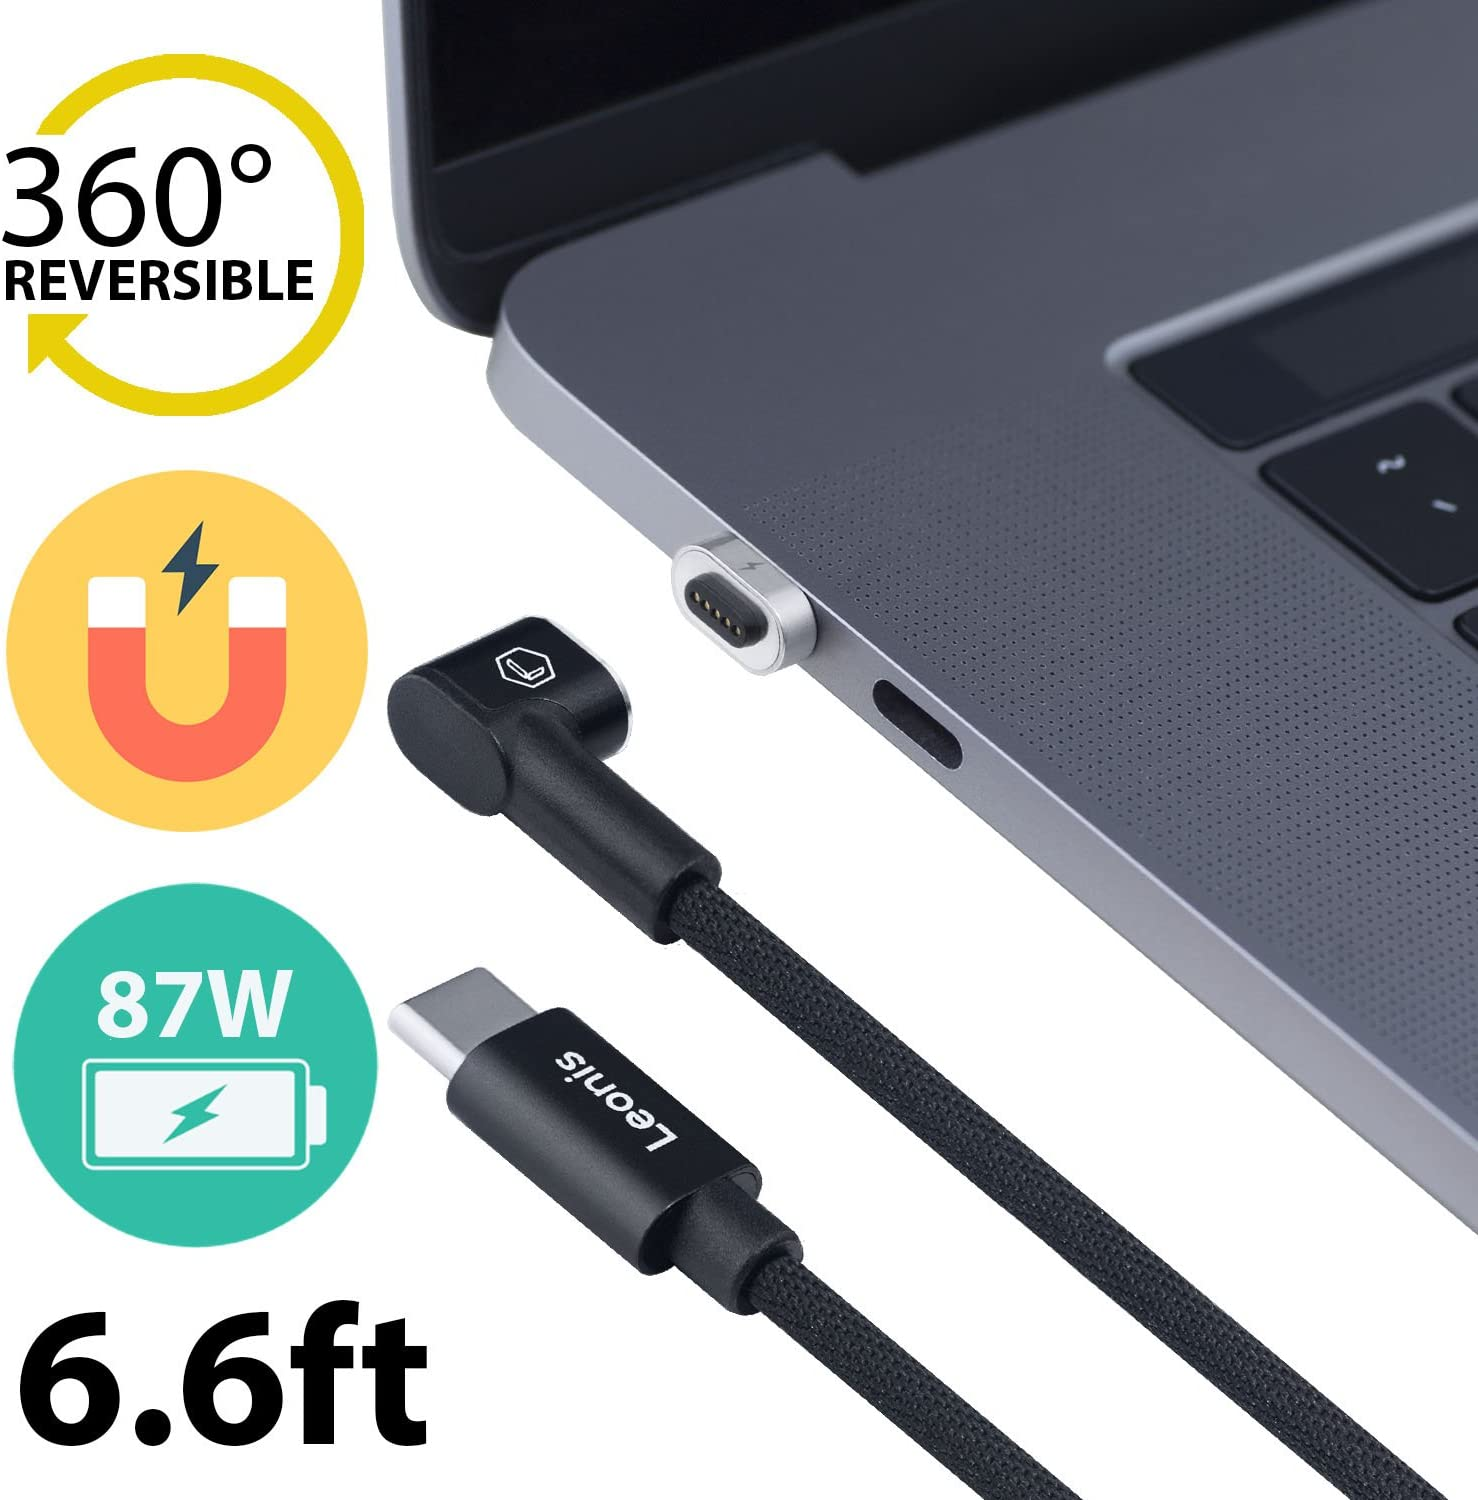 Leonis USB-C Magnetic Charger Charging Cable Replacement for USB-C to MagSafe Adapter Compatible with MacBook Pro and New MacBook Air New іРad Pro and Other USB-Type-C Laptops and Smartphones (Black)